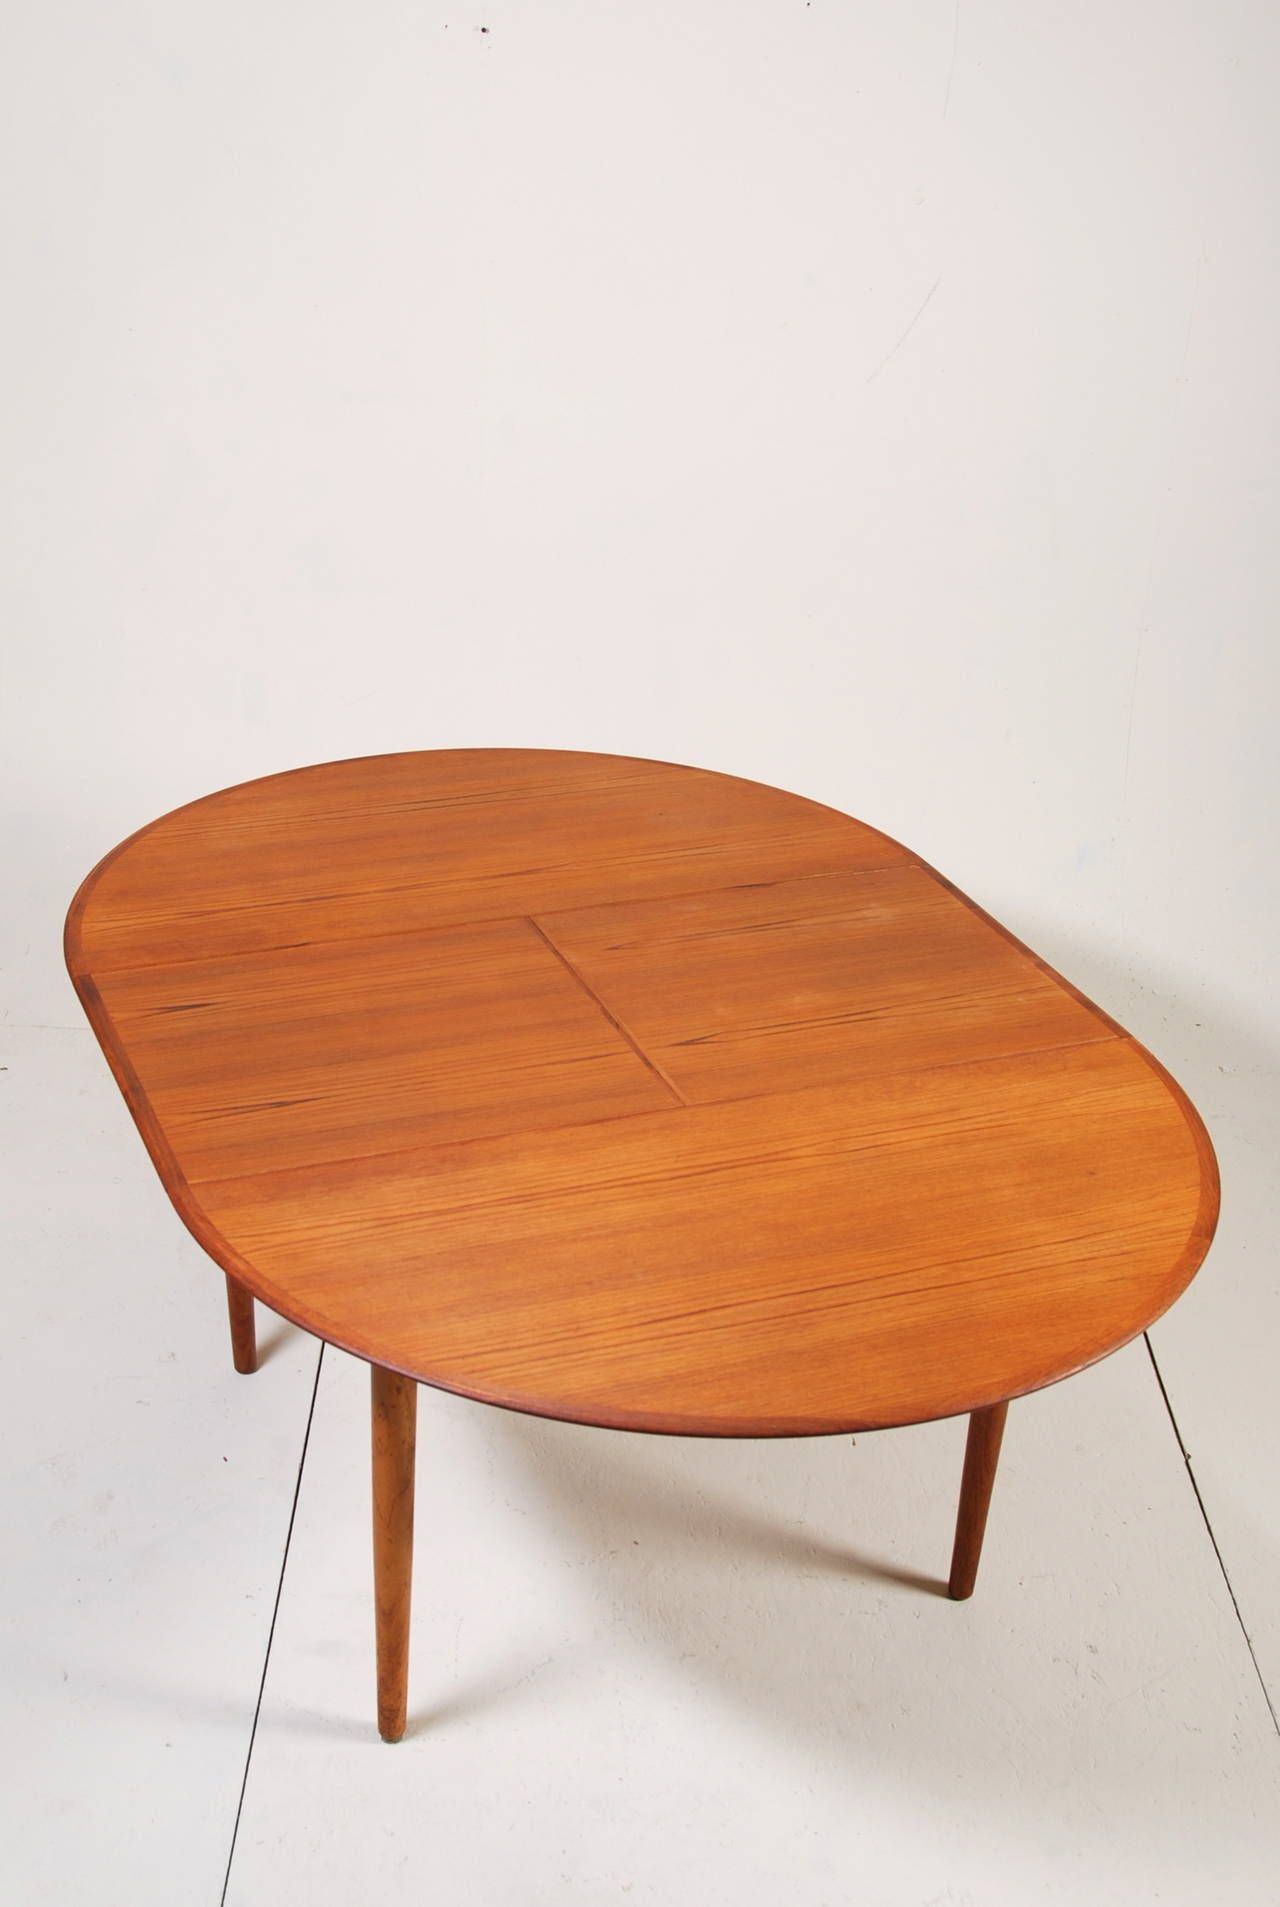 Round Danish Modern Teak Dining Table By Dyrlund 1stdibs Com Teak Dining Table Table Mid Century Dining Table [ 1907 x 1280 Pixel ]